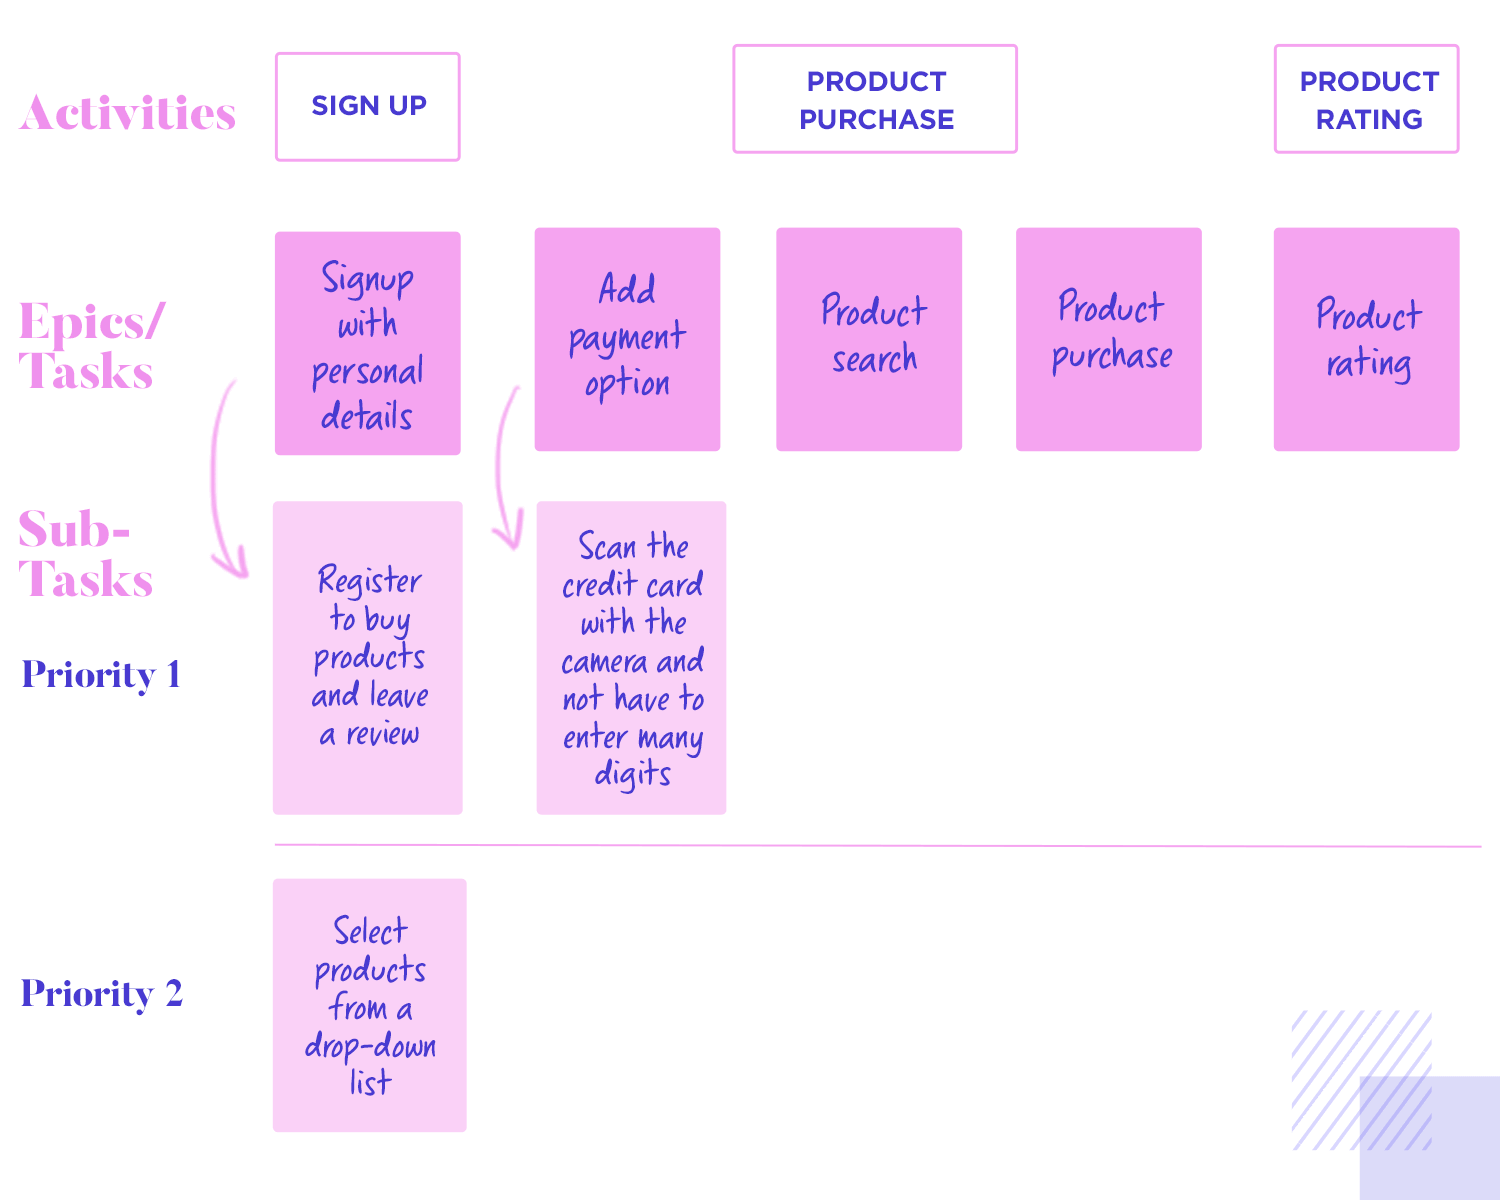 User story mapping - order of activities, epics and sub-tasks